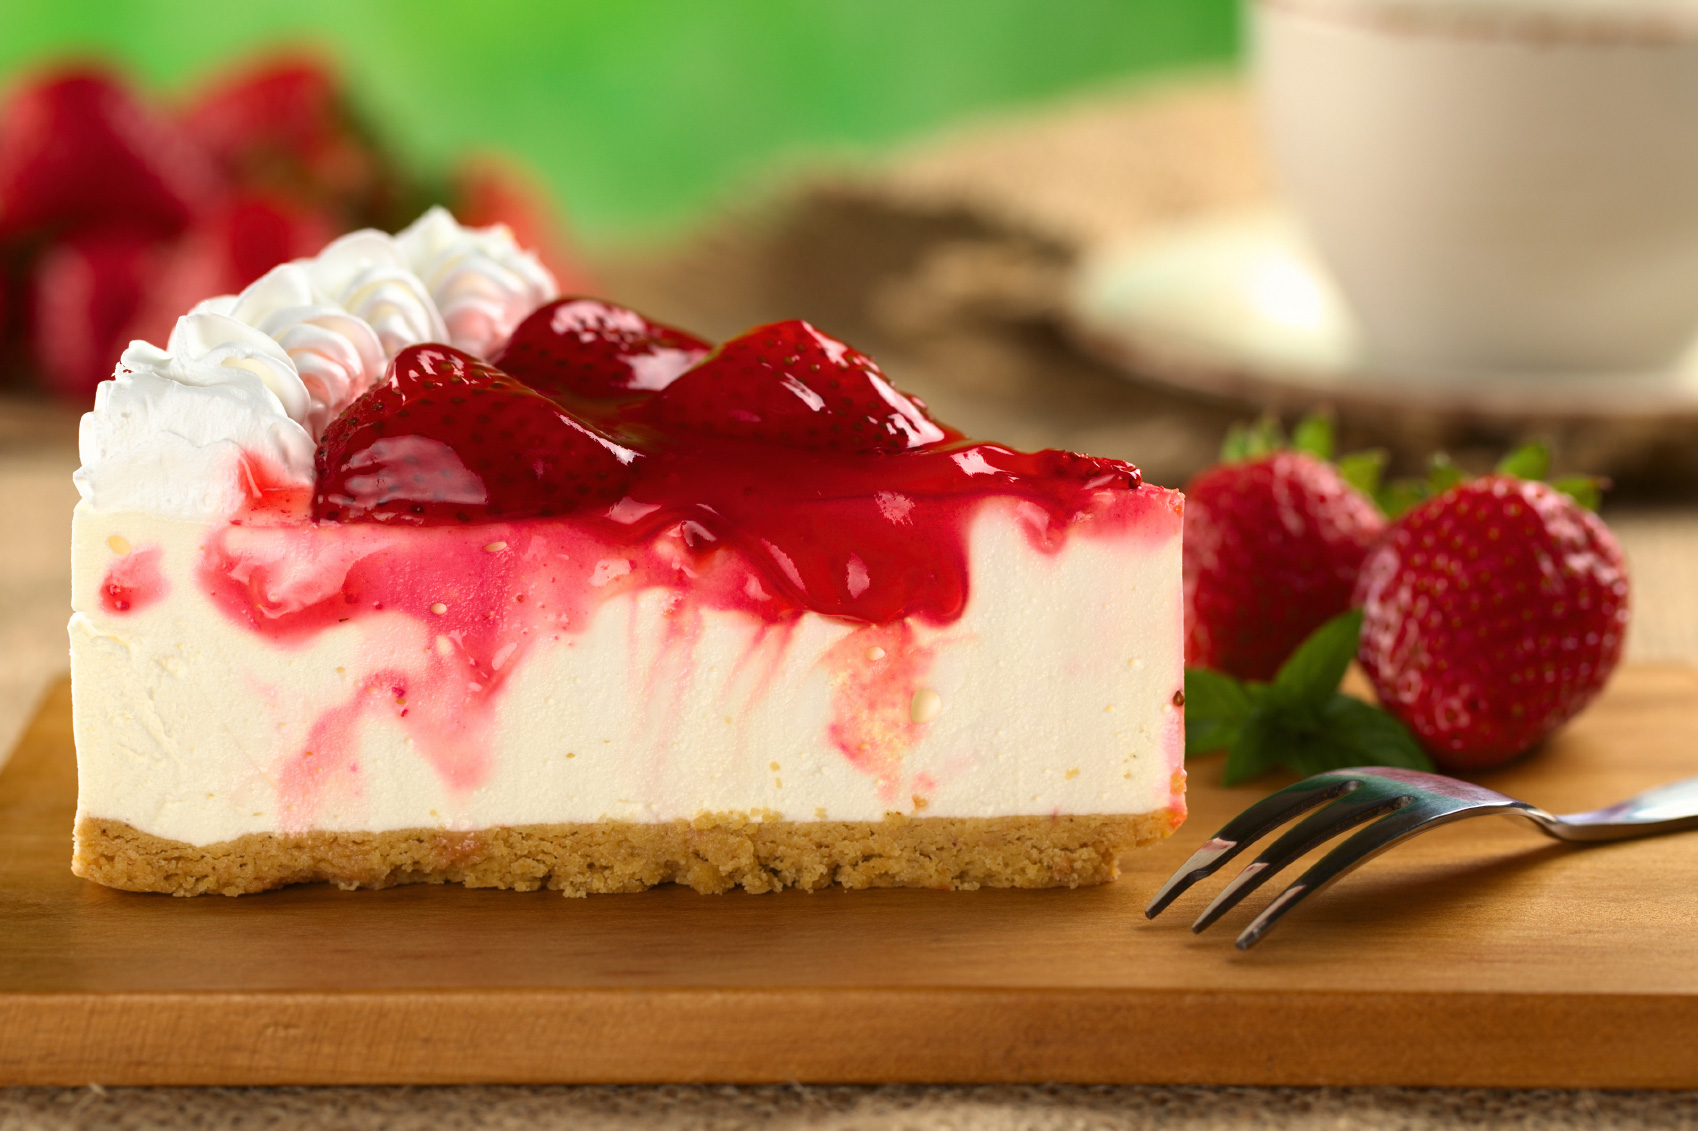 FOOD PORNS Strawberry-Cheesecake-with-Strawberry-Syrup